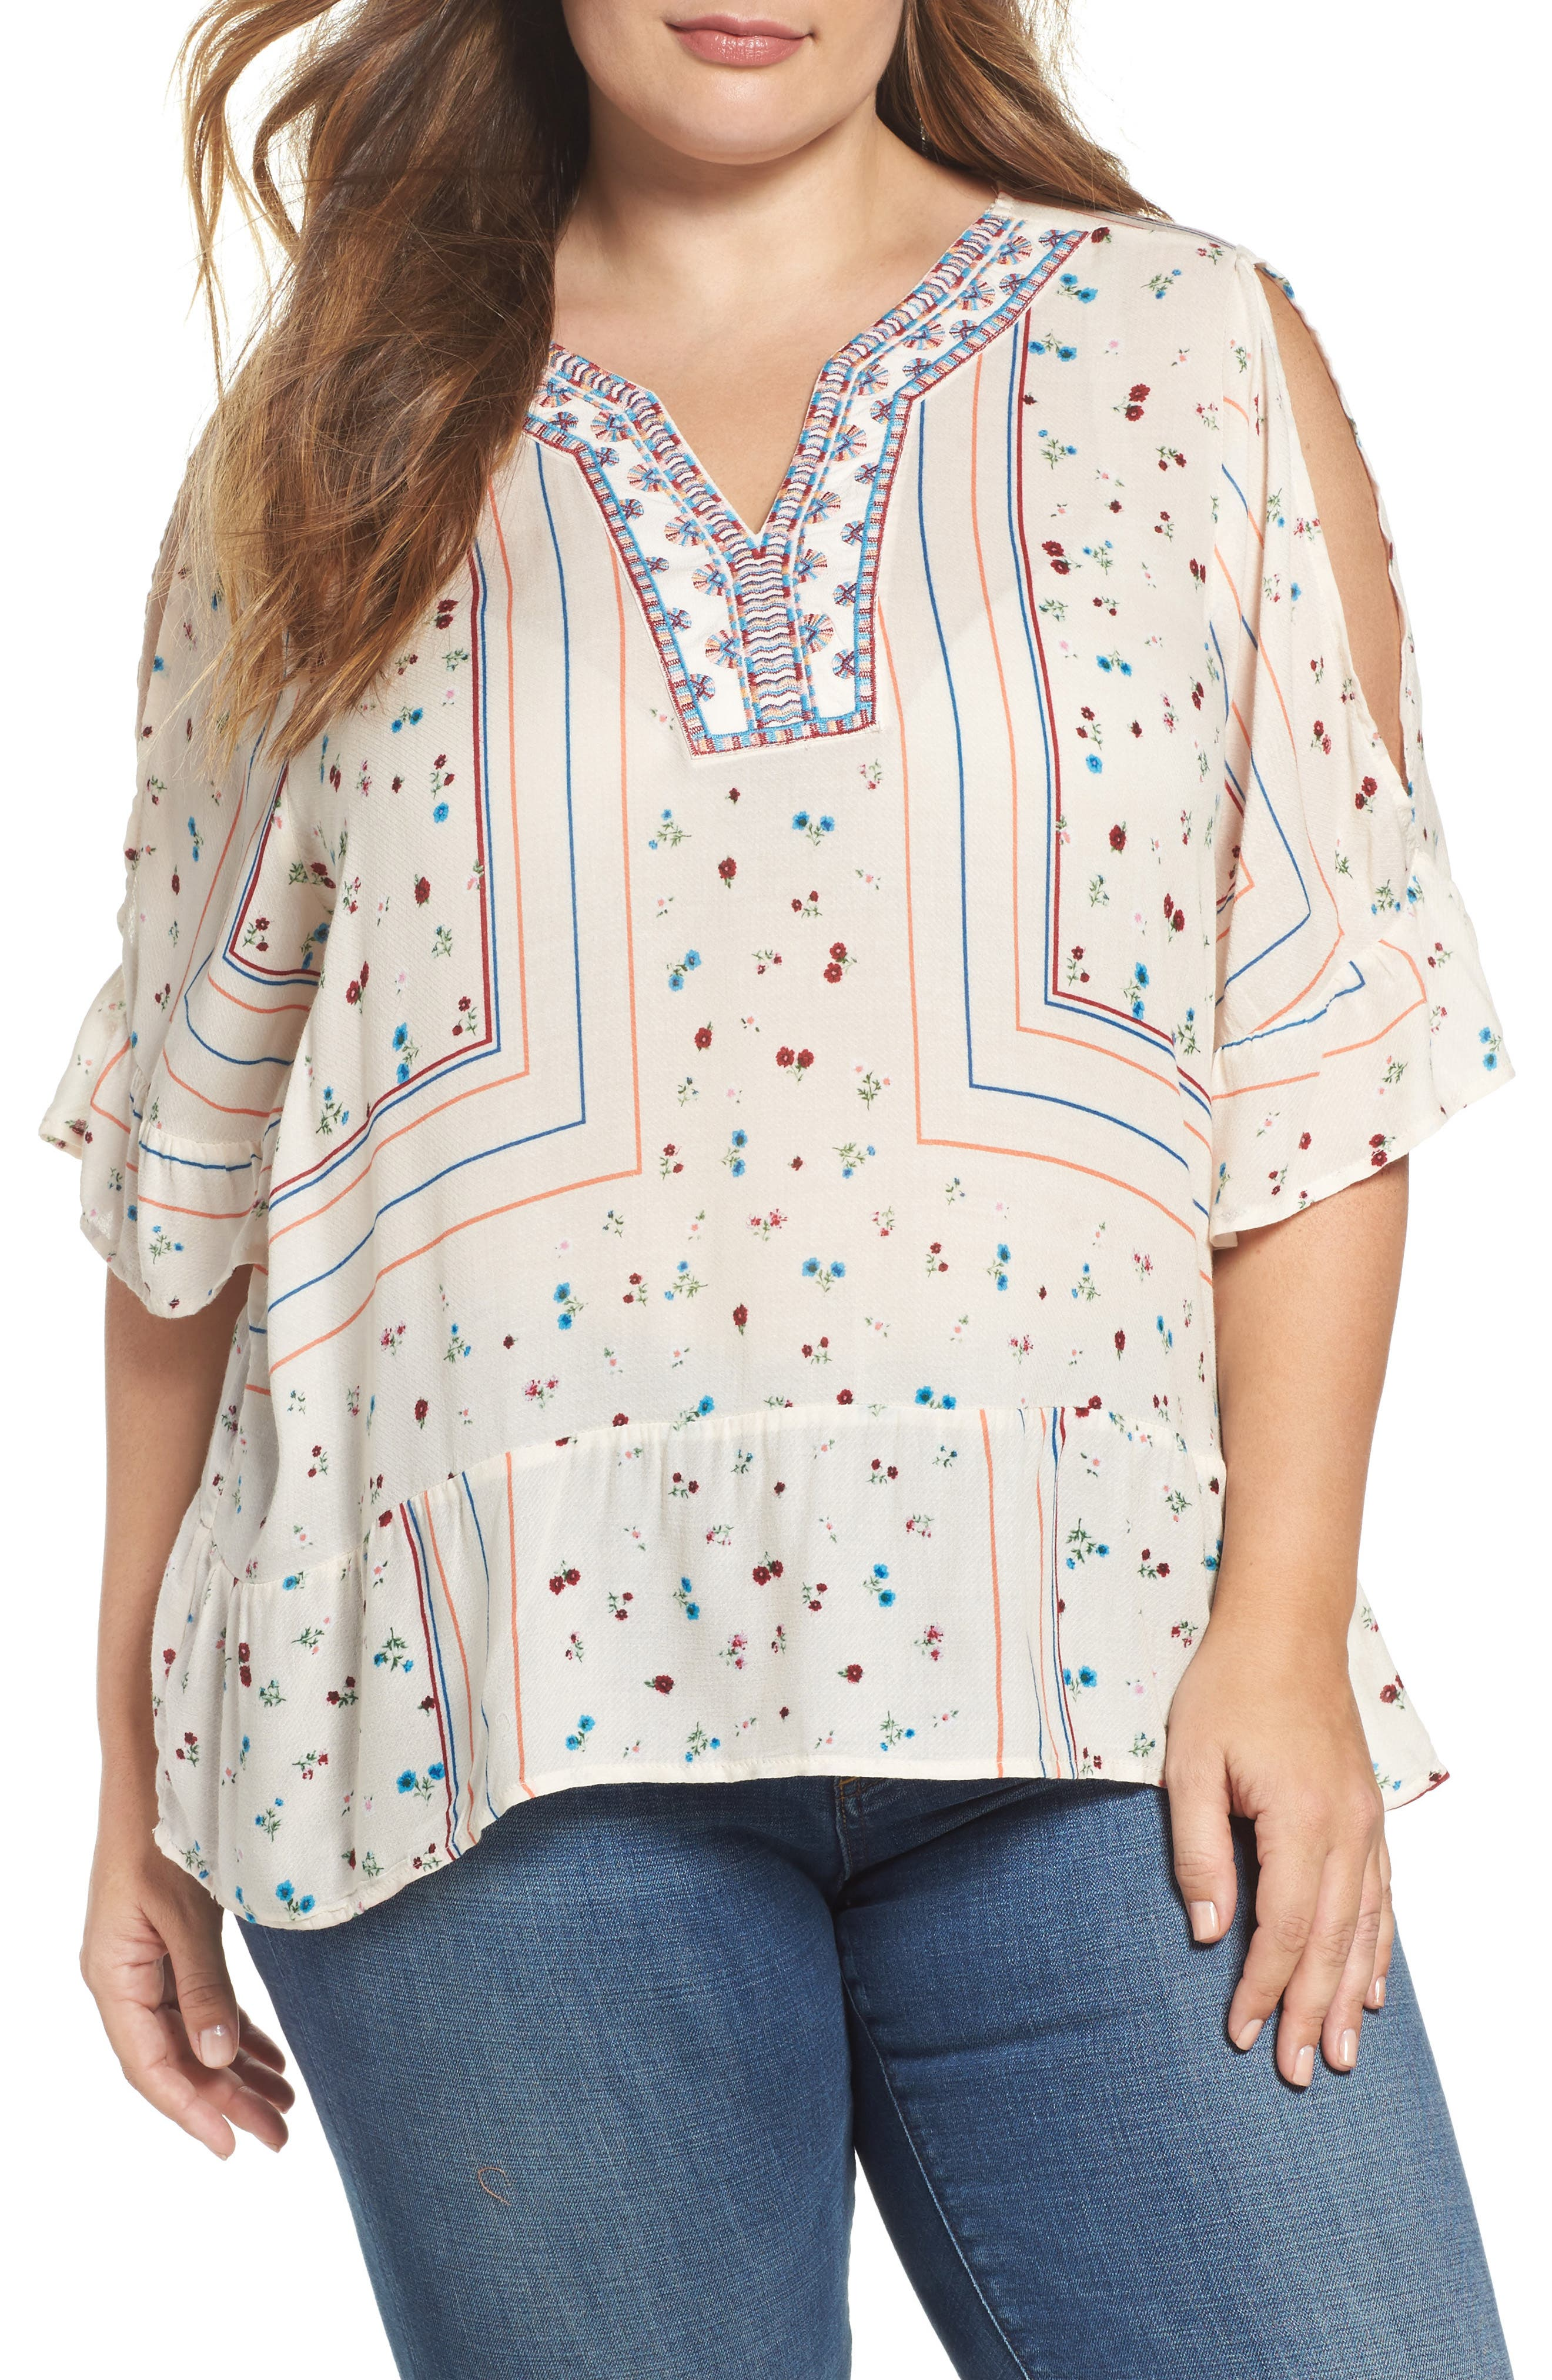 Main Image - Wit & Wisdom Embroidered Cold Shoulder Top (Plus Size) (Nordstrom Exclusive)